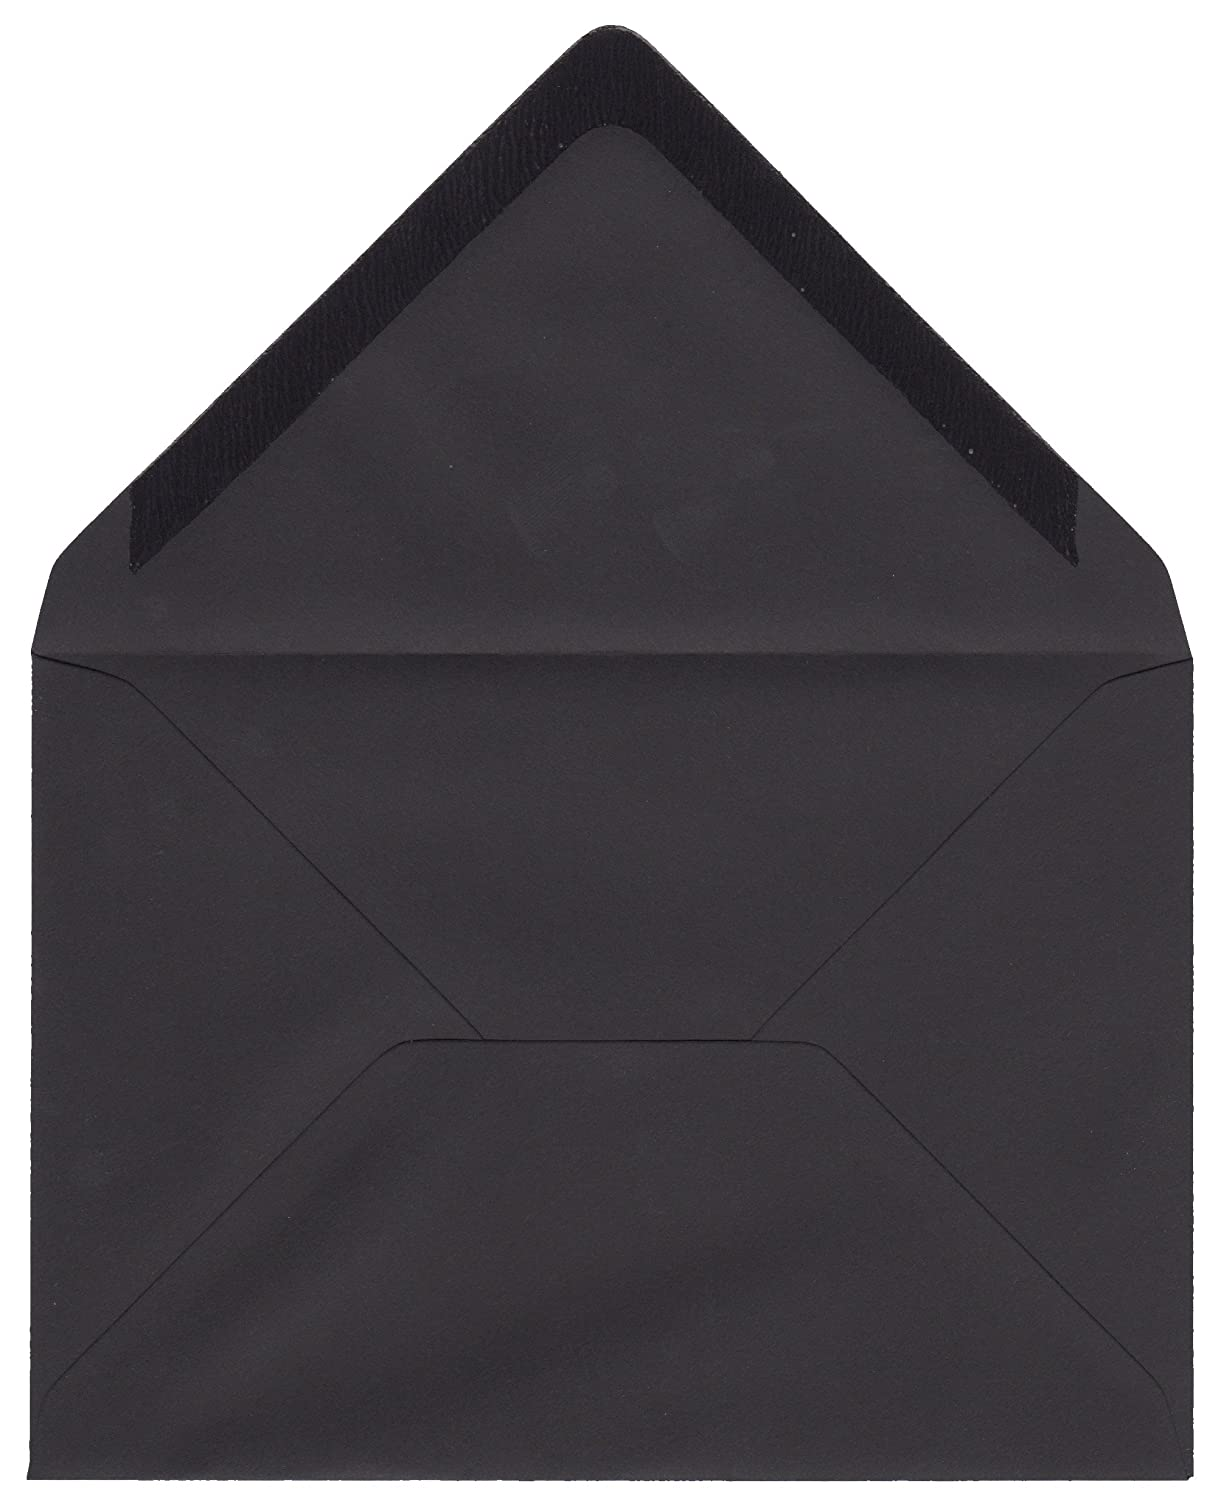 50 x C6 Night Black Envelopes - 100 GSM - for A6 Greeting Cards, Invitations, Correspondence Gobrecht & Ulrich HB-EN-OS-015f